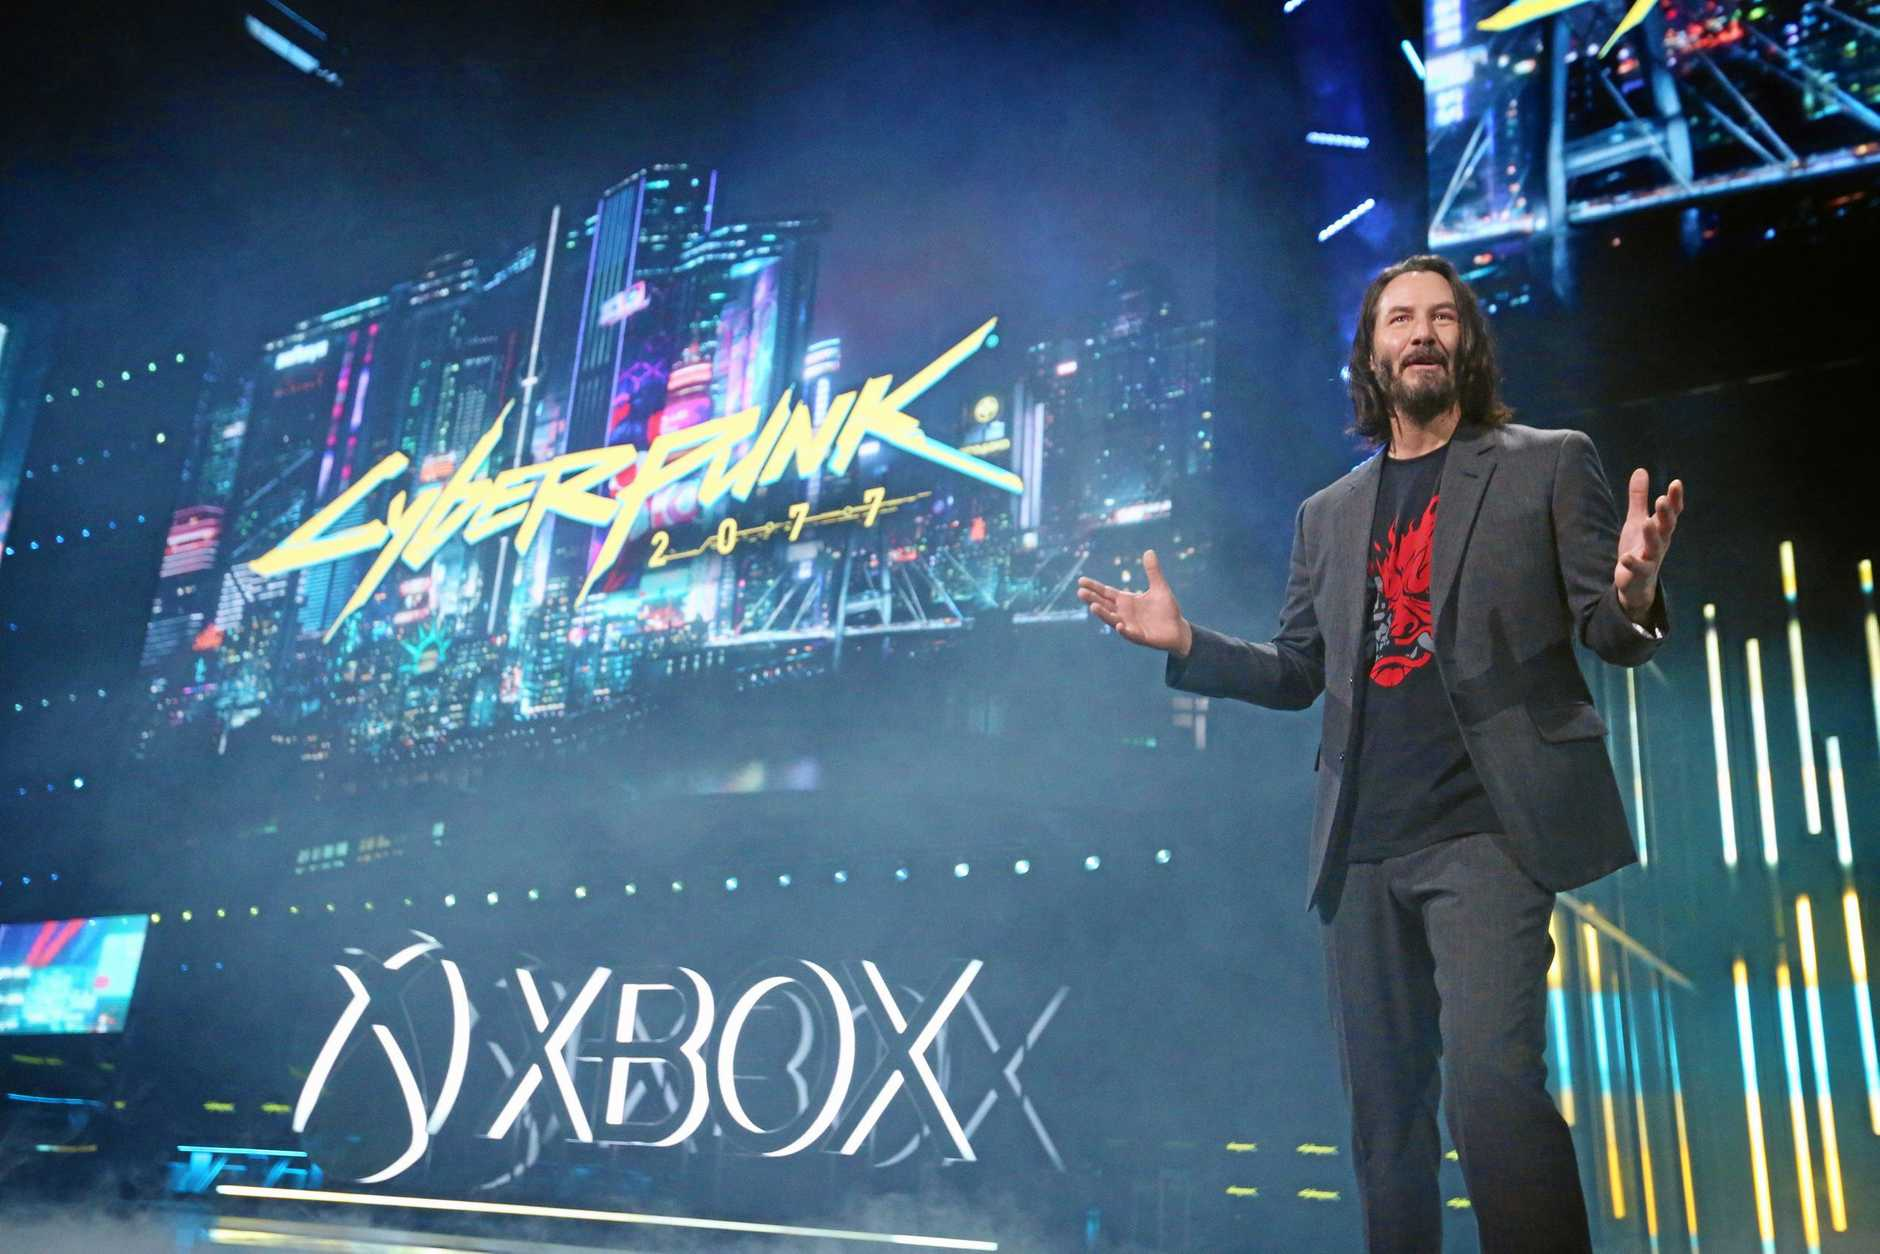 SURPRISE APPEARANCE: Keanu Reeves unveils the Cyberpunk: 2077 release date at the Xbox E3 2019 briefing in Los Angeles.